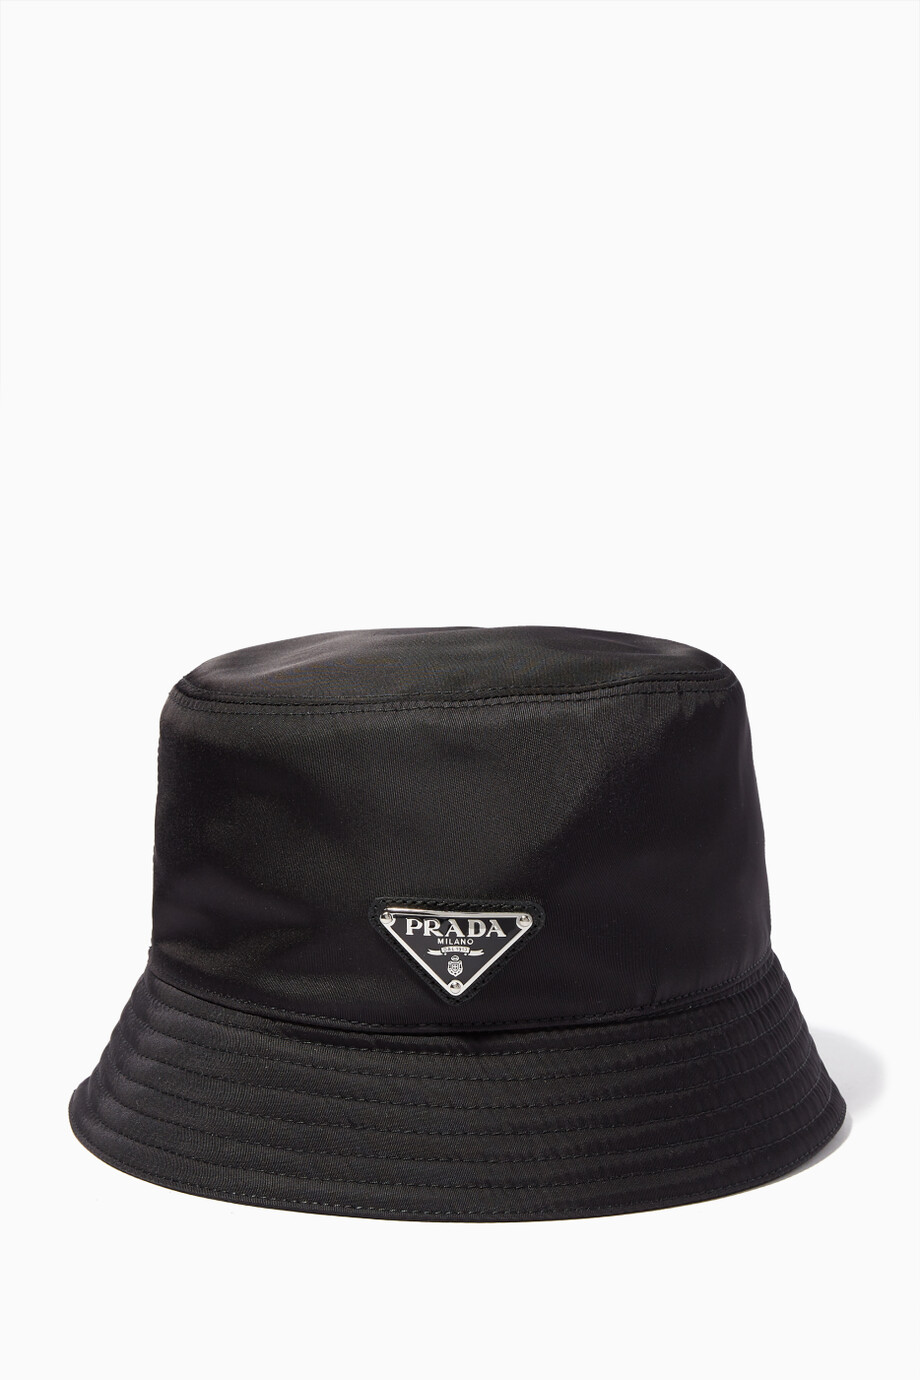 3072849c189 Shop Prada Black Black Logo Bucket Hat for Men